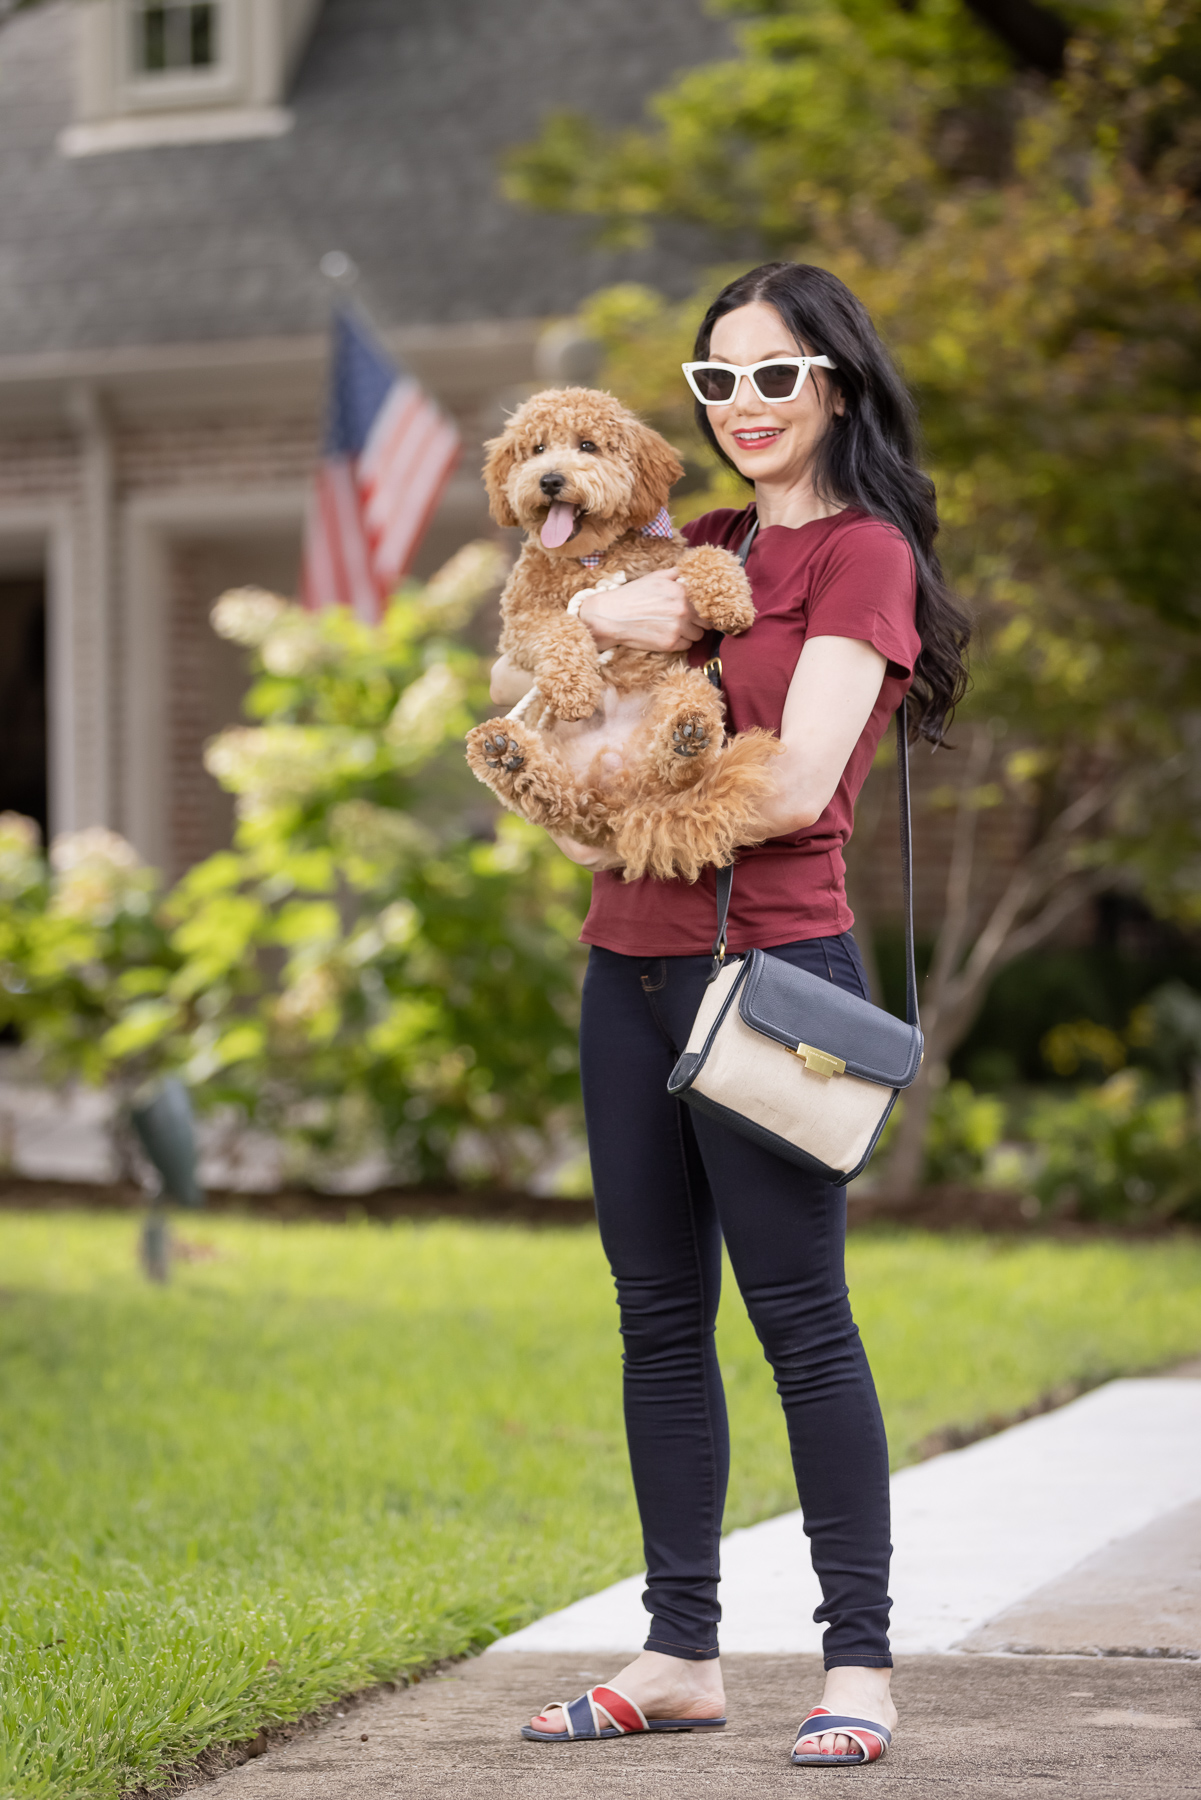 Mott & Bow Jeans and Tee Shirt, Tommy Hilfiger Crossbody Bag, J. Crew Sandals, Italic Cateye Sunglasses, Mini Goldendoodle puppy, Foggy Dog Bowtie, Preppy Style, Dallas Fashion Blogger | Mott and Bow Jeans by popular Dallas fashion blog, Pretty Little Shoppers: image of a woman wearing a crimson t-shirt, Mott and Bow Jeans, blue and red strap slide sandals, and black and tan crossbody bag while holding her doodle breed dog.